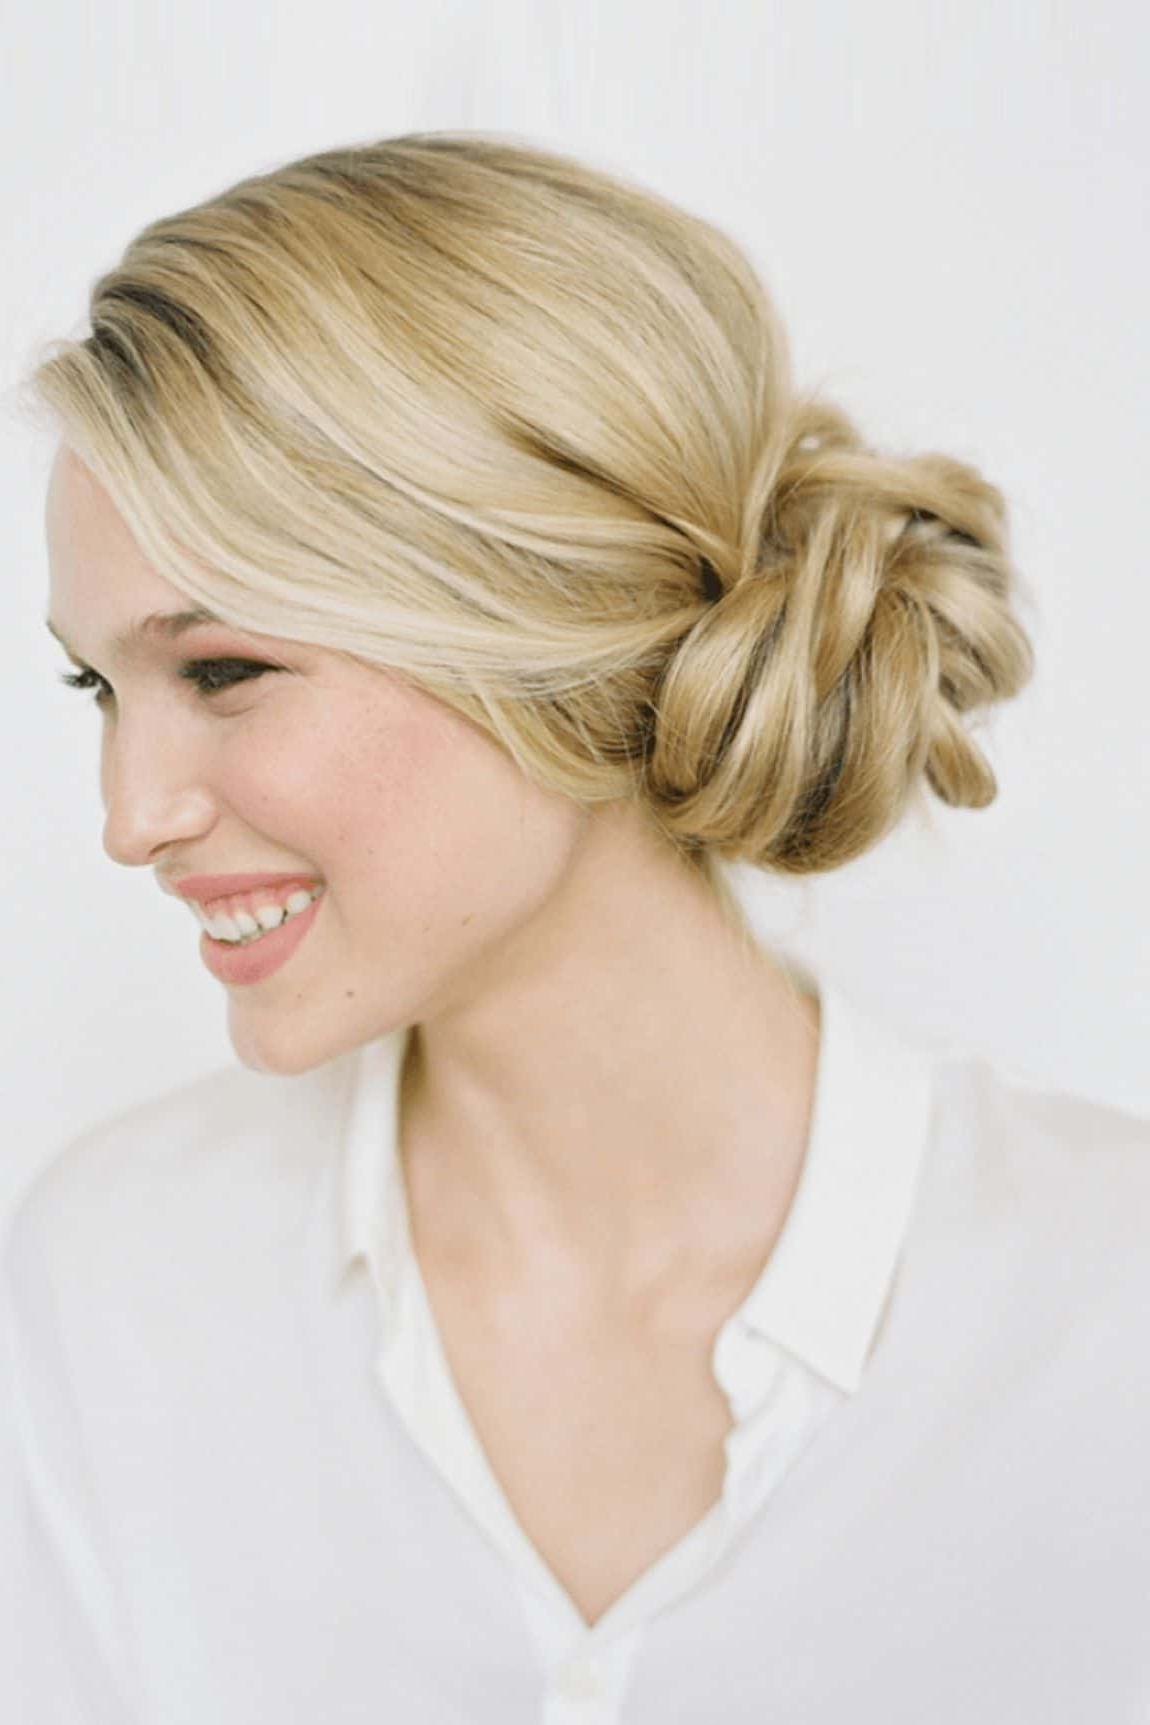 Most Popular Fishtailed Snail Bun Prom Hairstyles With Regard To Best 10 Prom Hairstyles That Can Rock The Dance Floor! (View 14 of 20)